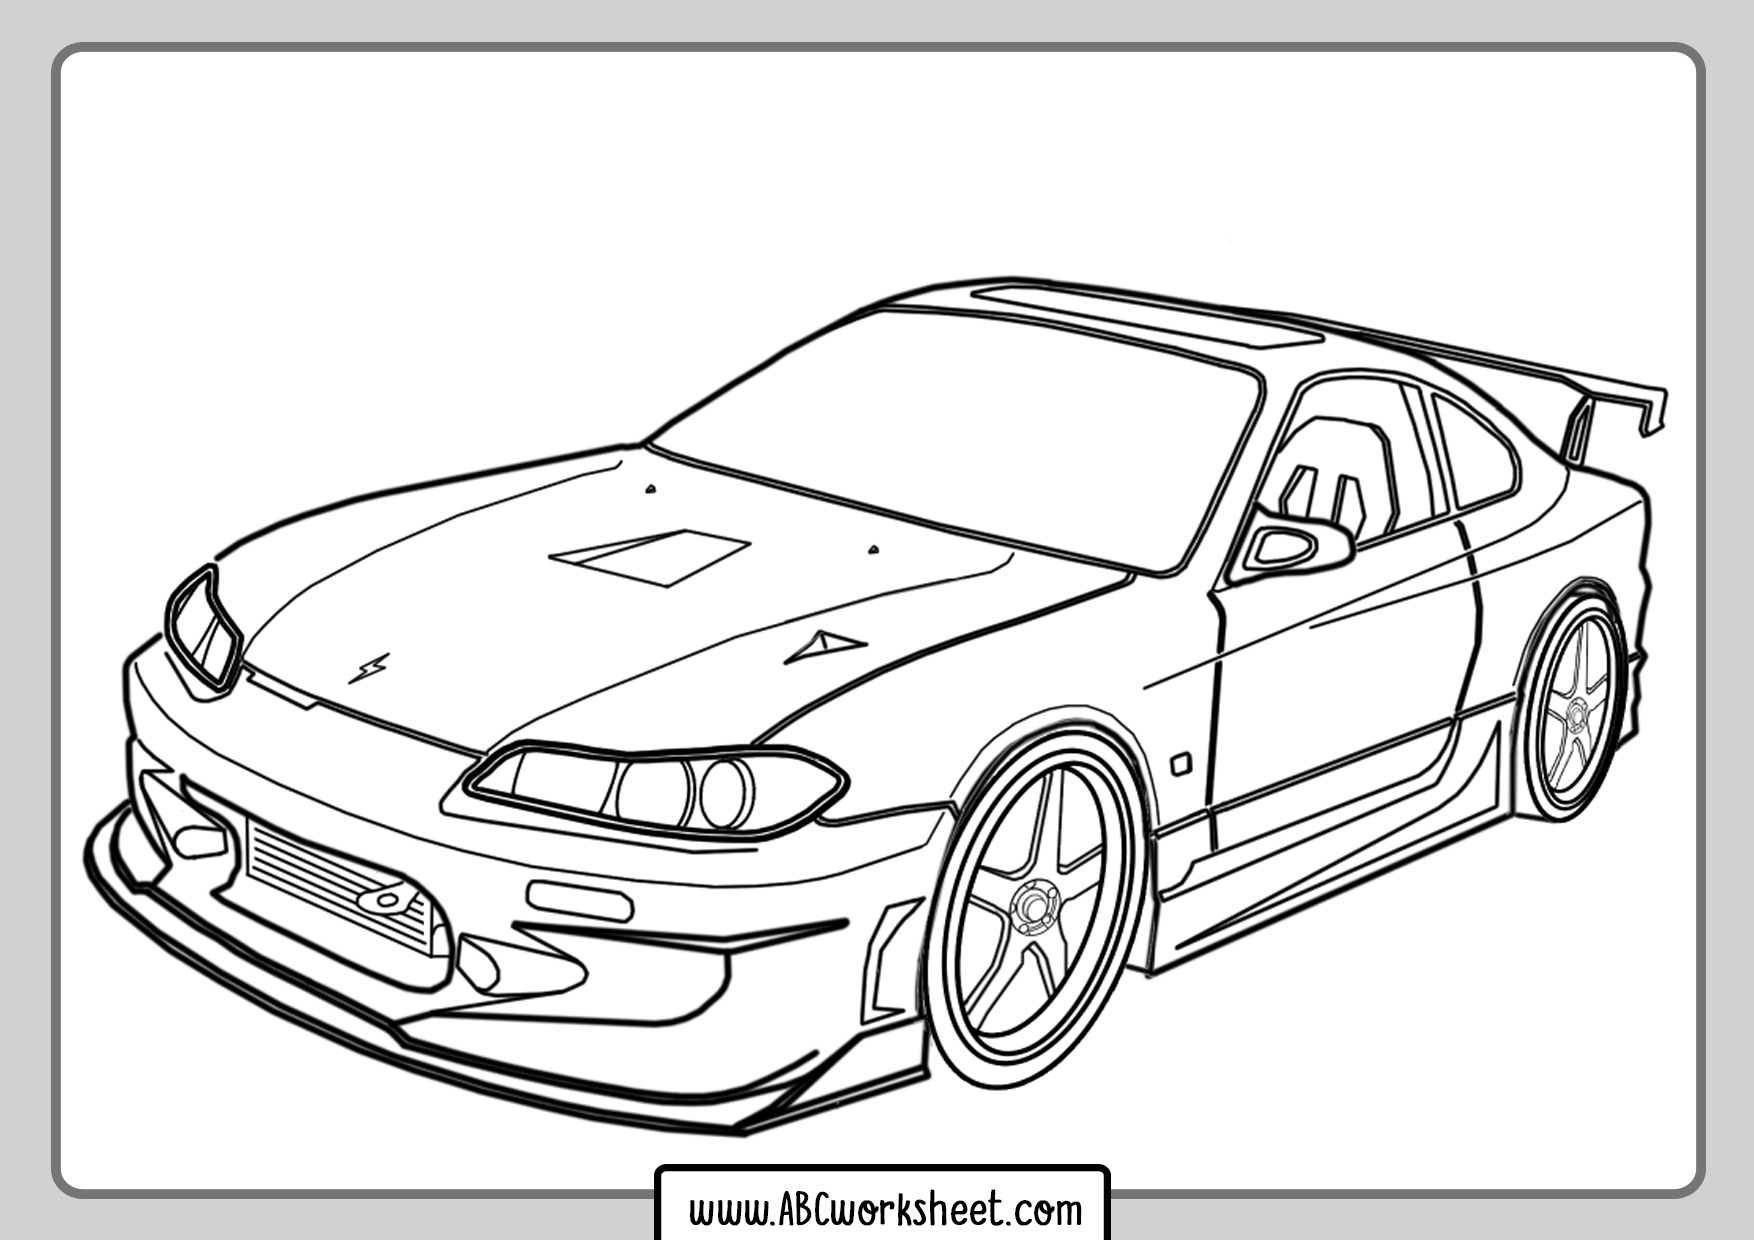 Racing Car Coloring Pages For Kids